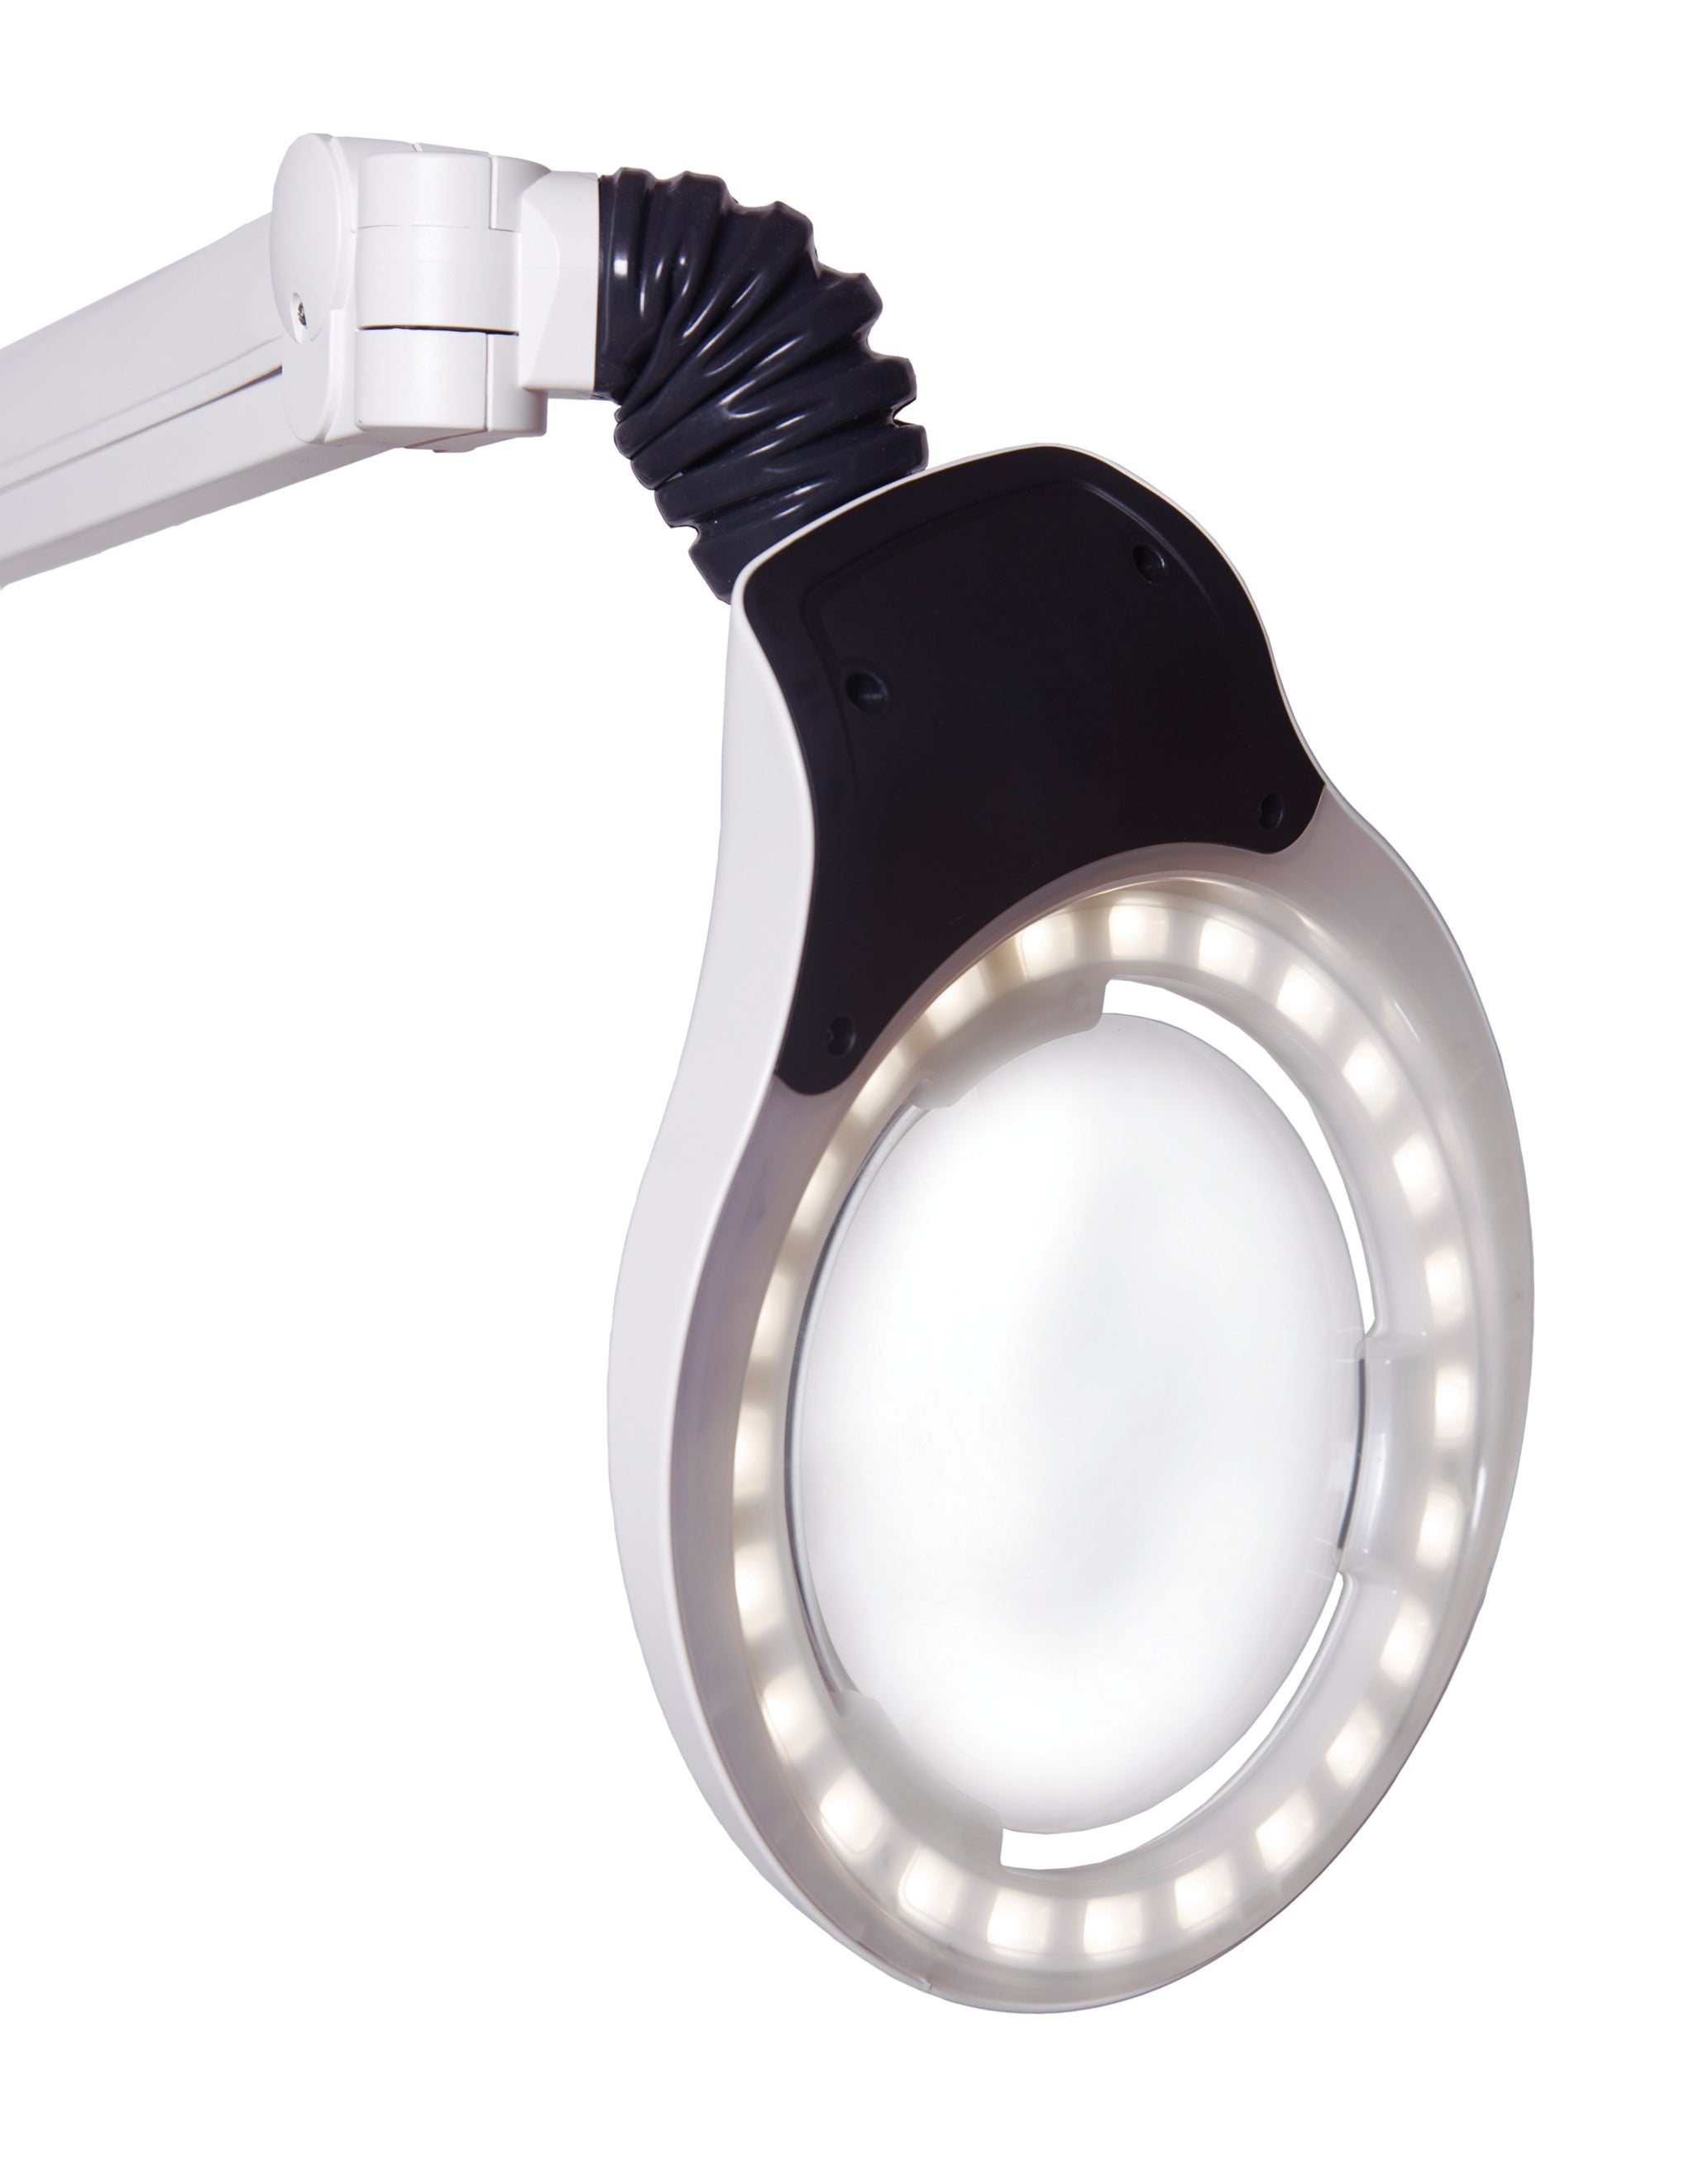 Surgical Light with Magnification - SLMAG-Laboratory Accessory-Mortech Manufacturing Company Inc. Quality Stainless Steel Autopsy, Morgue, Funeral Home, Necropsy, Veterinary / Anatomy, Dissection Equipment and Accessories